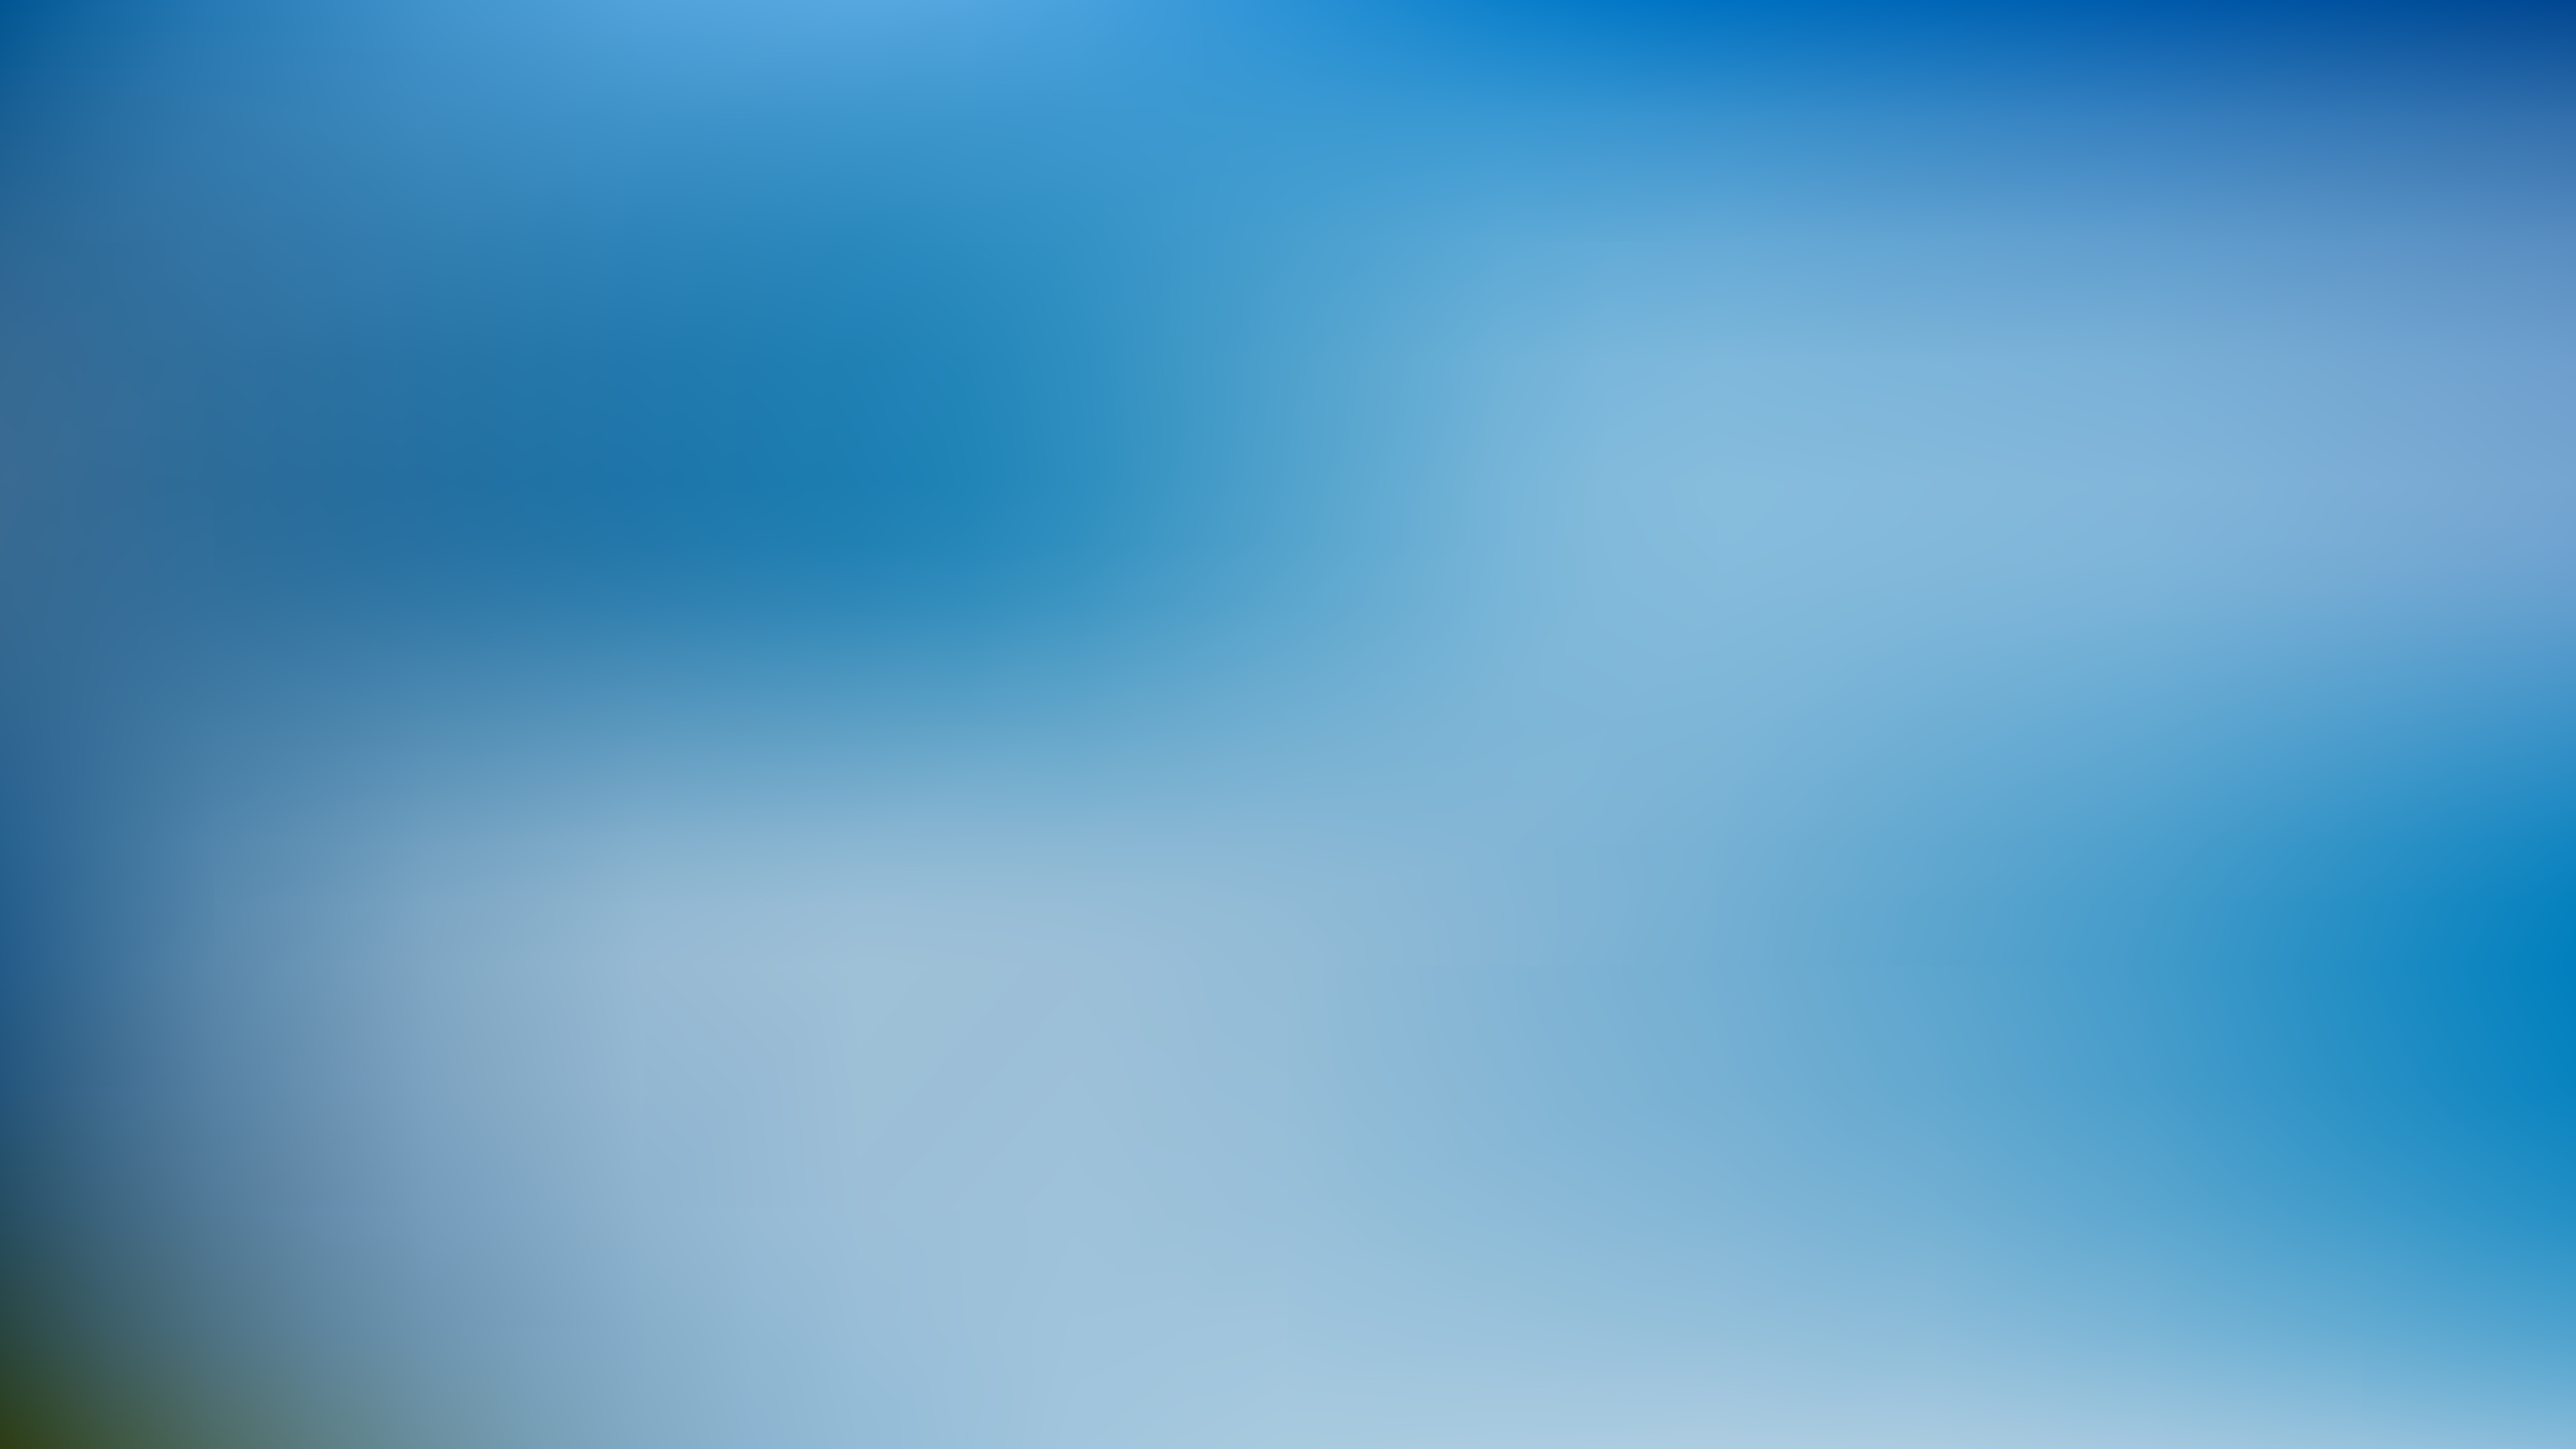 Blue Professional Background 8000x4500